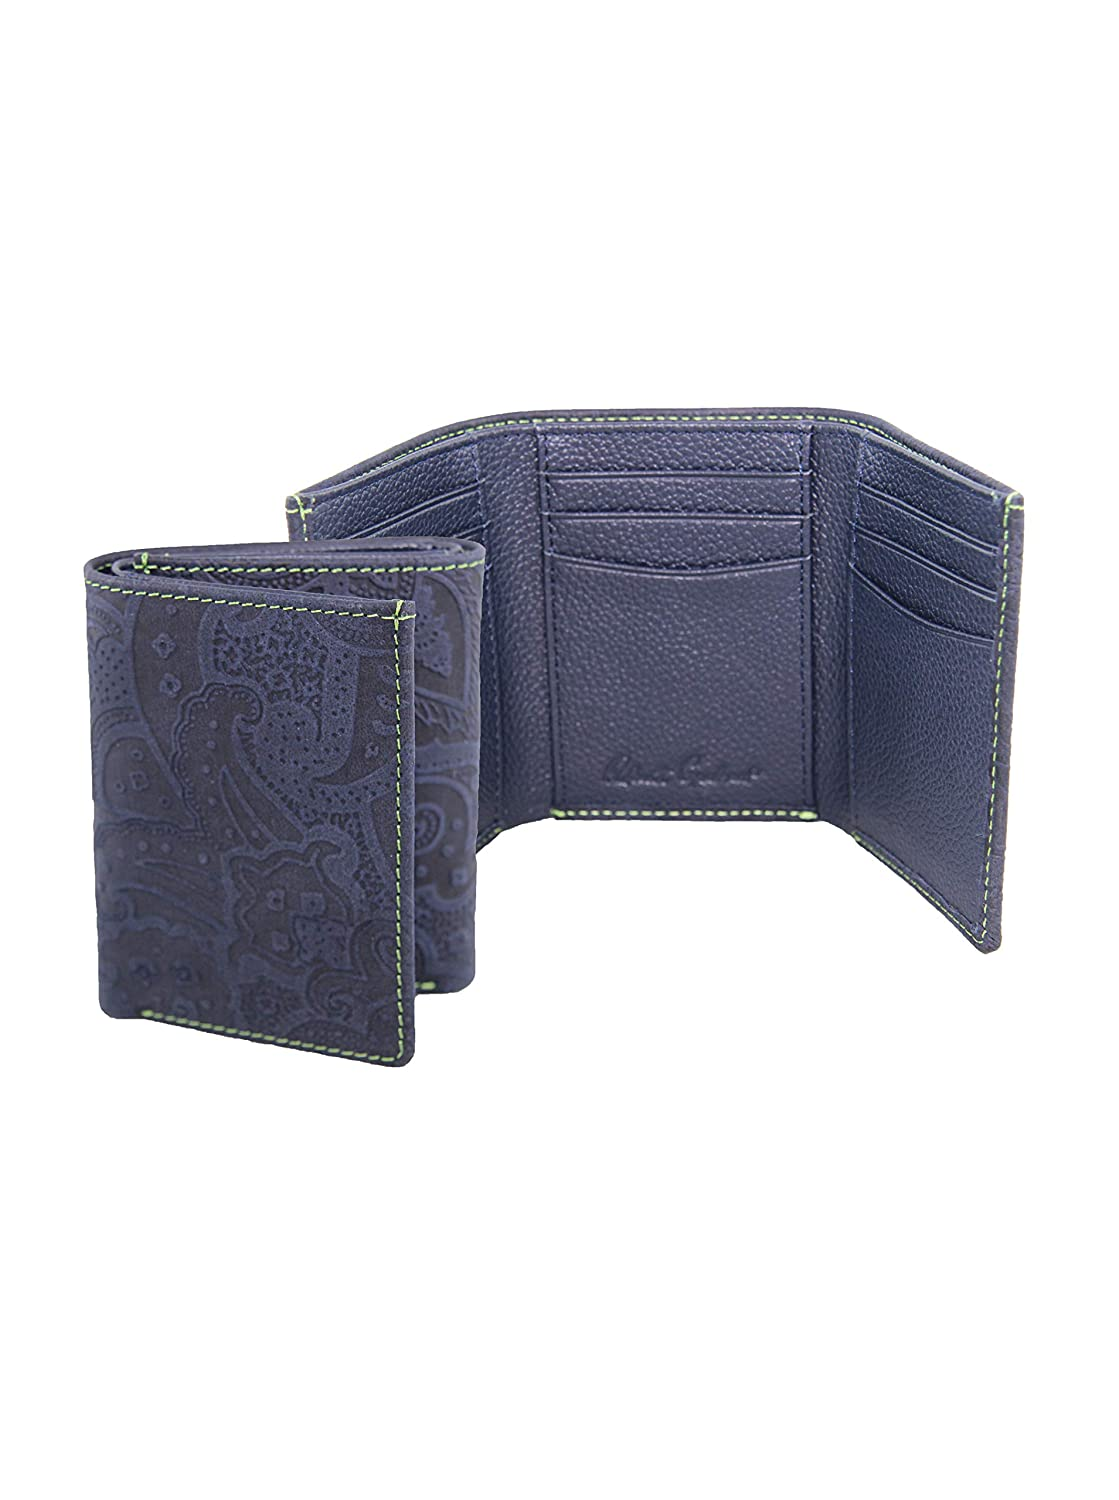 Robert Graham Chaisty Trifold Paisley Embossed Wallet RG207580